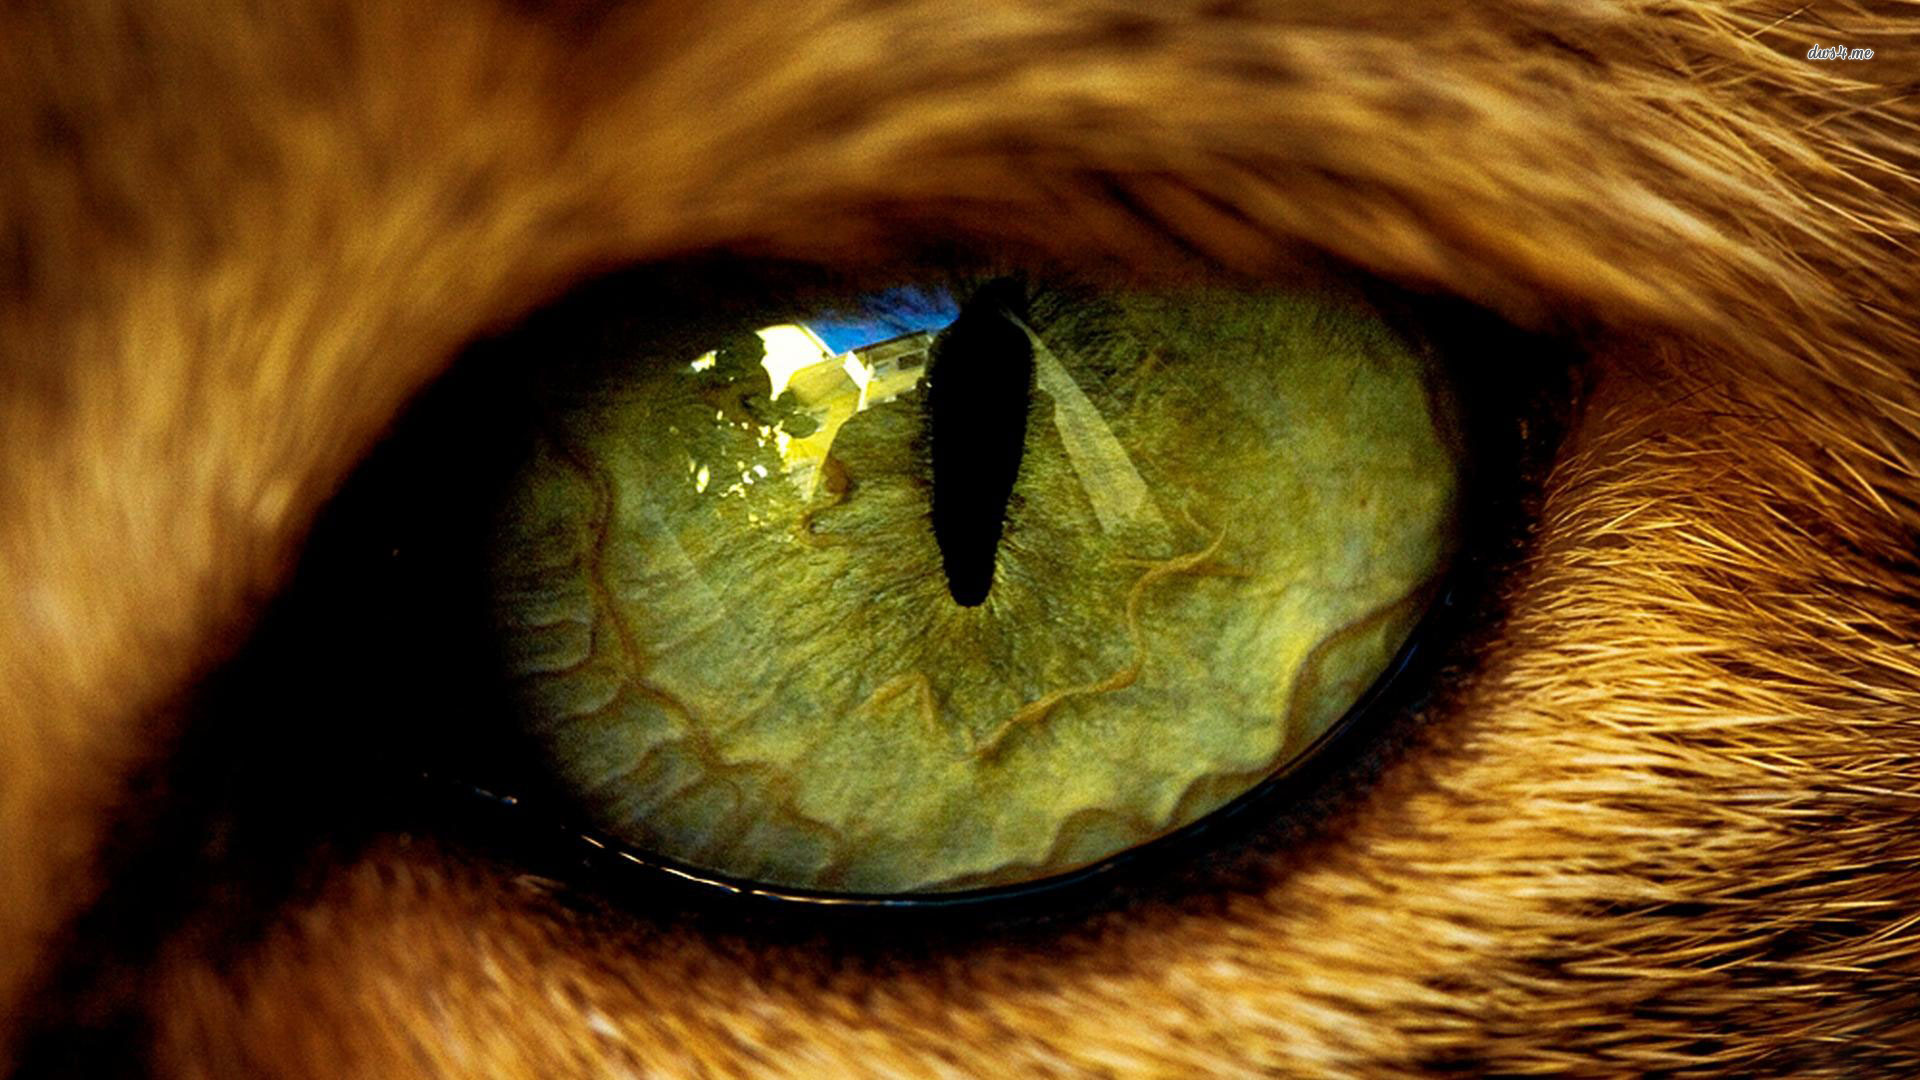 Animal-Yellow-Eyes-With-Stare-In-Hearth-Tiger-To-Pouncing-On-wallpaper-wp3402411